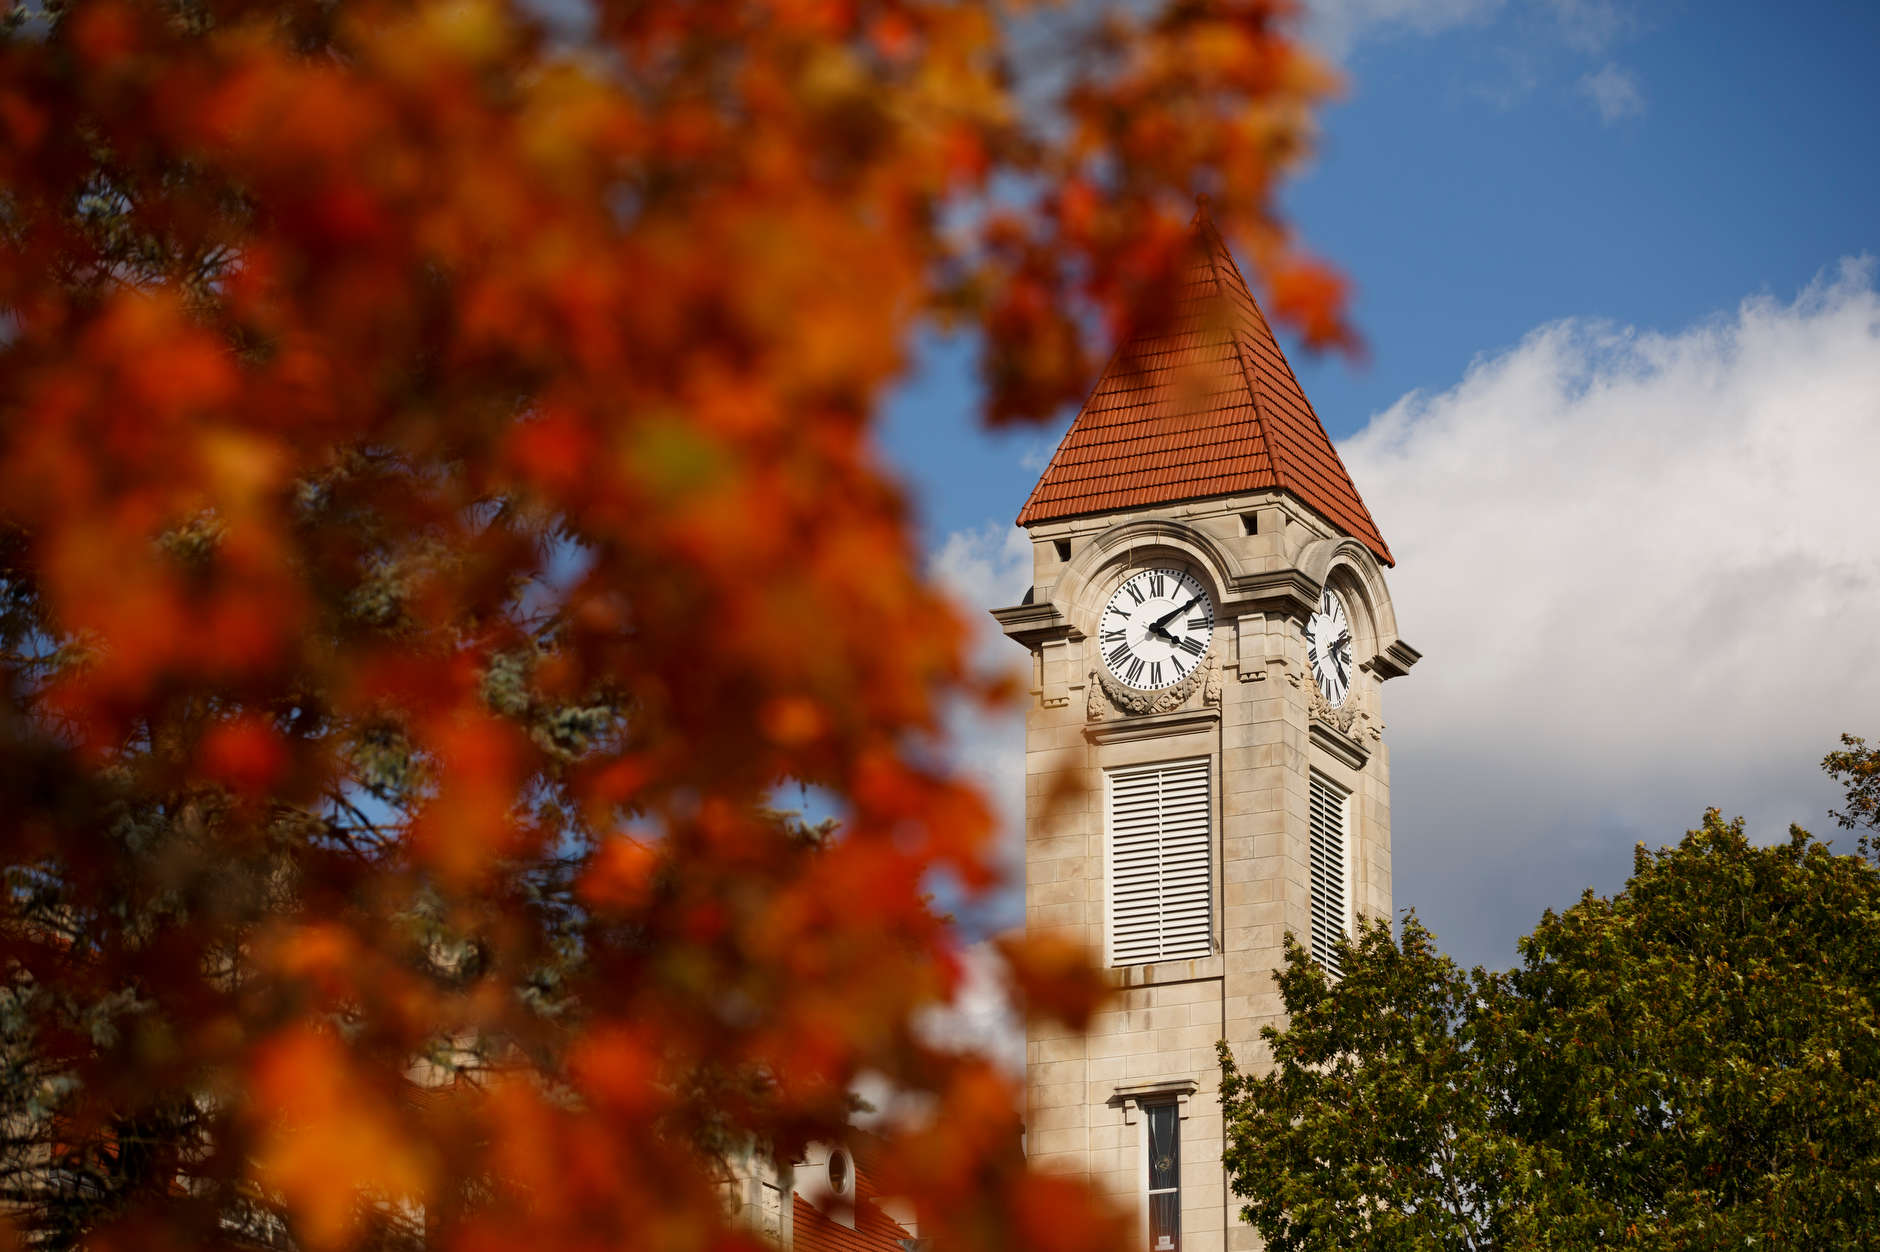 The IU Student Building clock tower is pictured on a fall day at IU Bloomington on Tuesday, Oct. 22, 2019. (James Brosher/Indiana University)